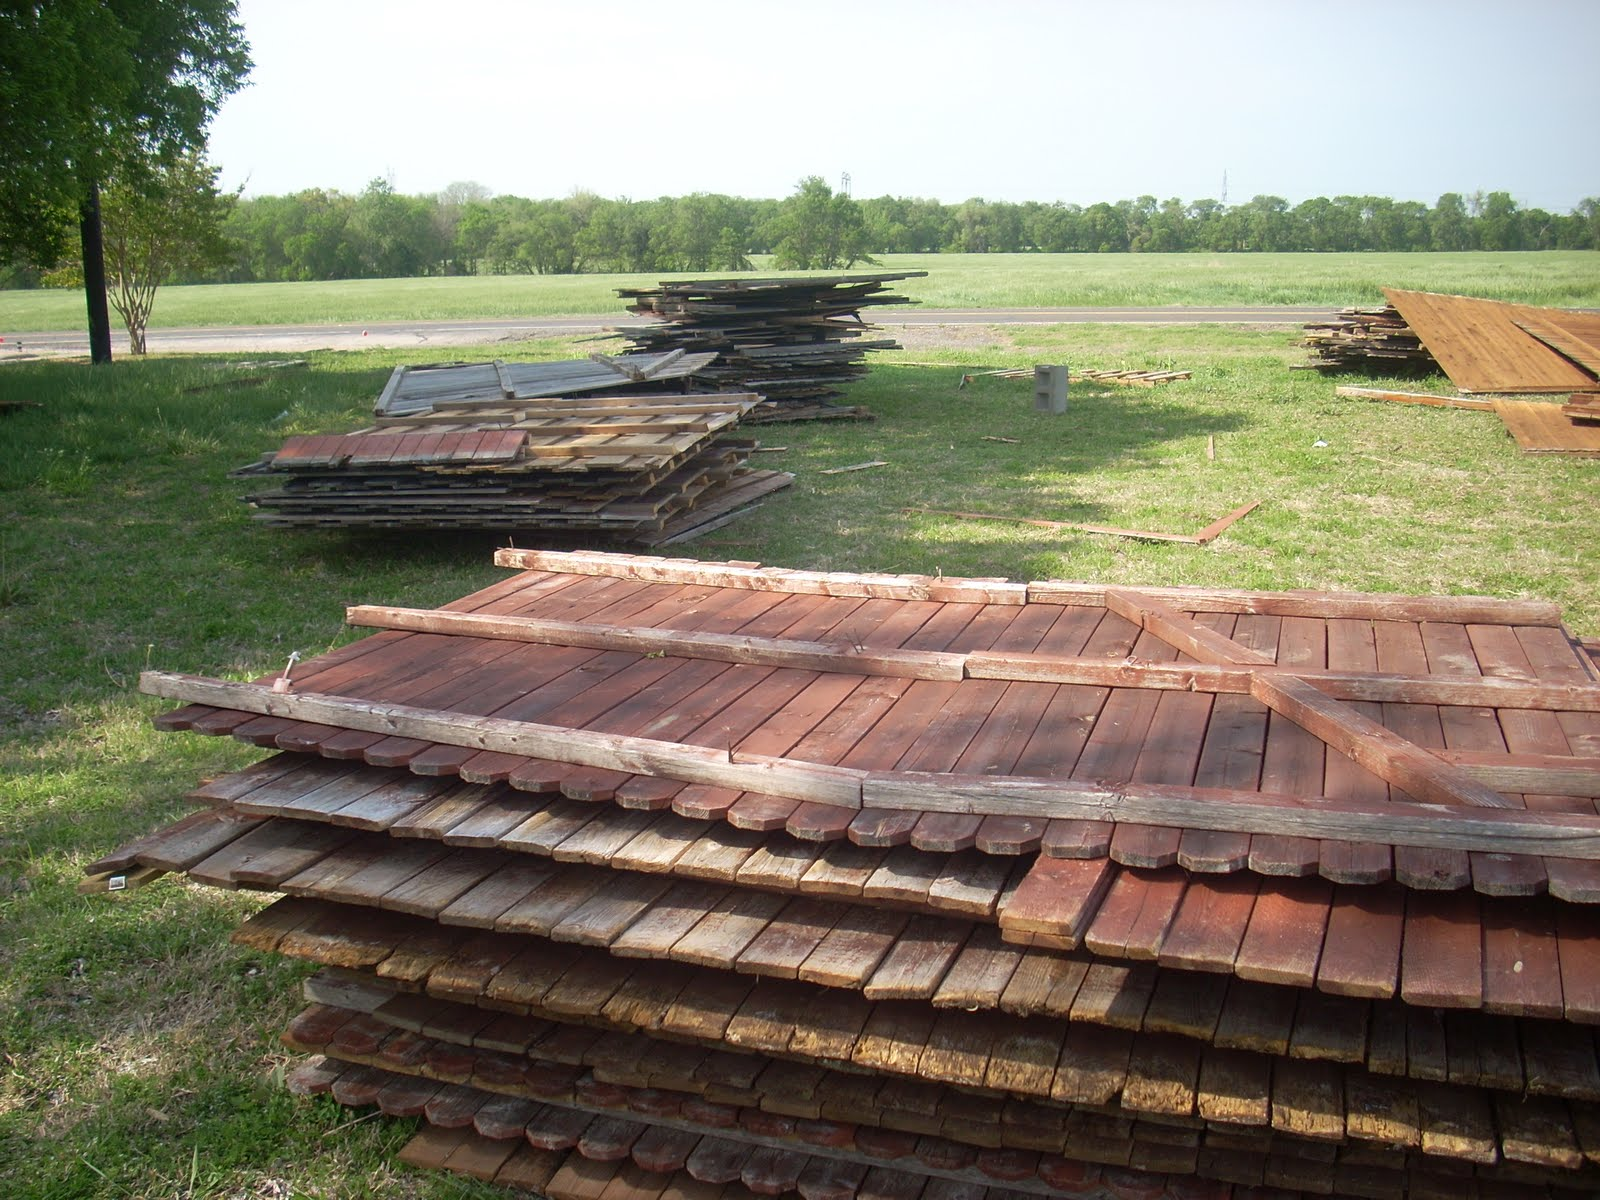 Superb img of  Wylie Texas: GONE 13 Stained Pine Fence Panels 6'tall x 8'wide with #8E5E3D color and 1600x1200 pixels